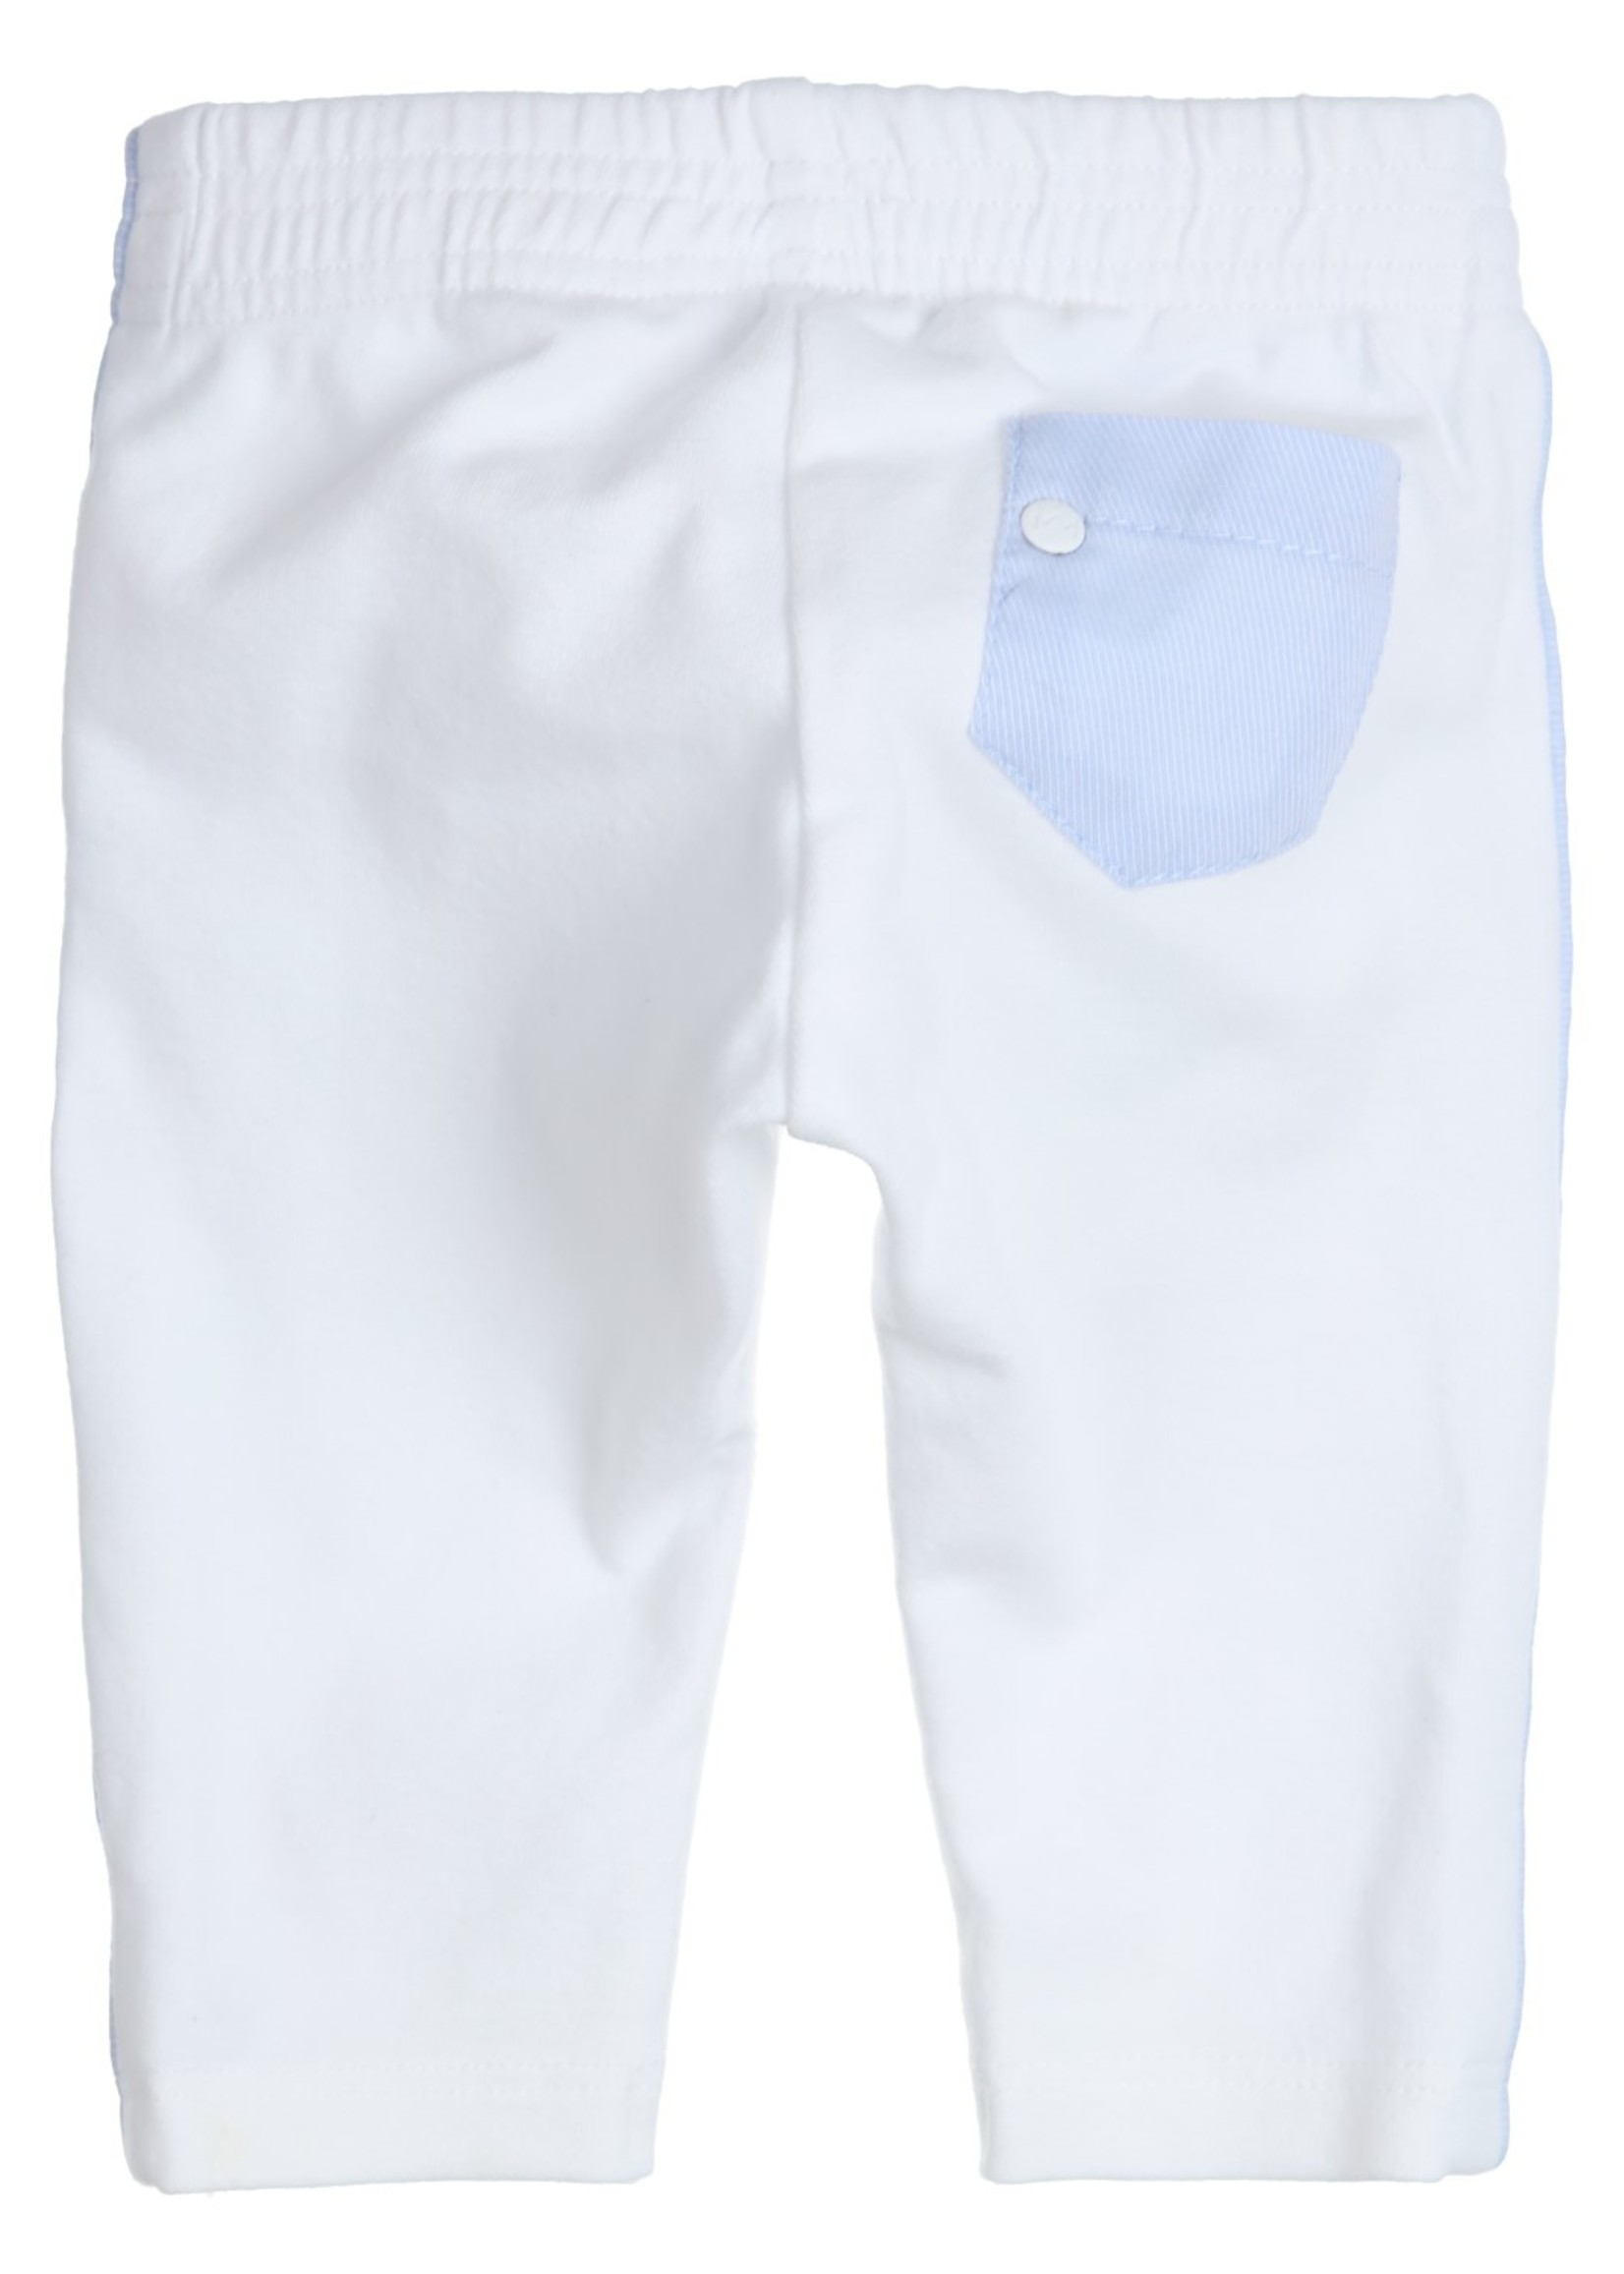 Gymp Gymp trousers passepoil and pocket wit